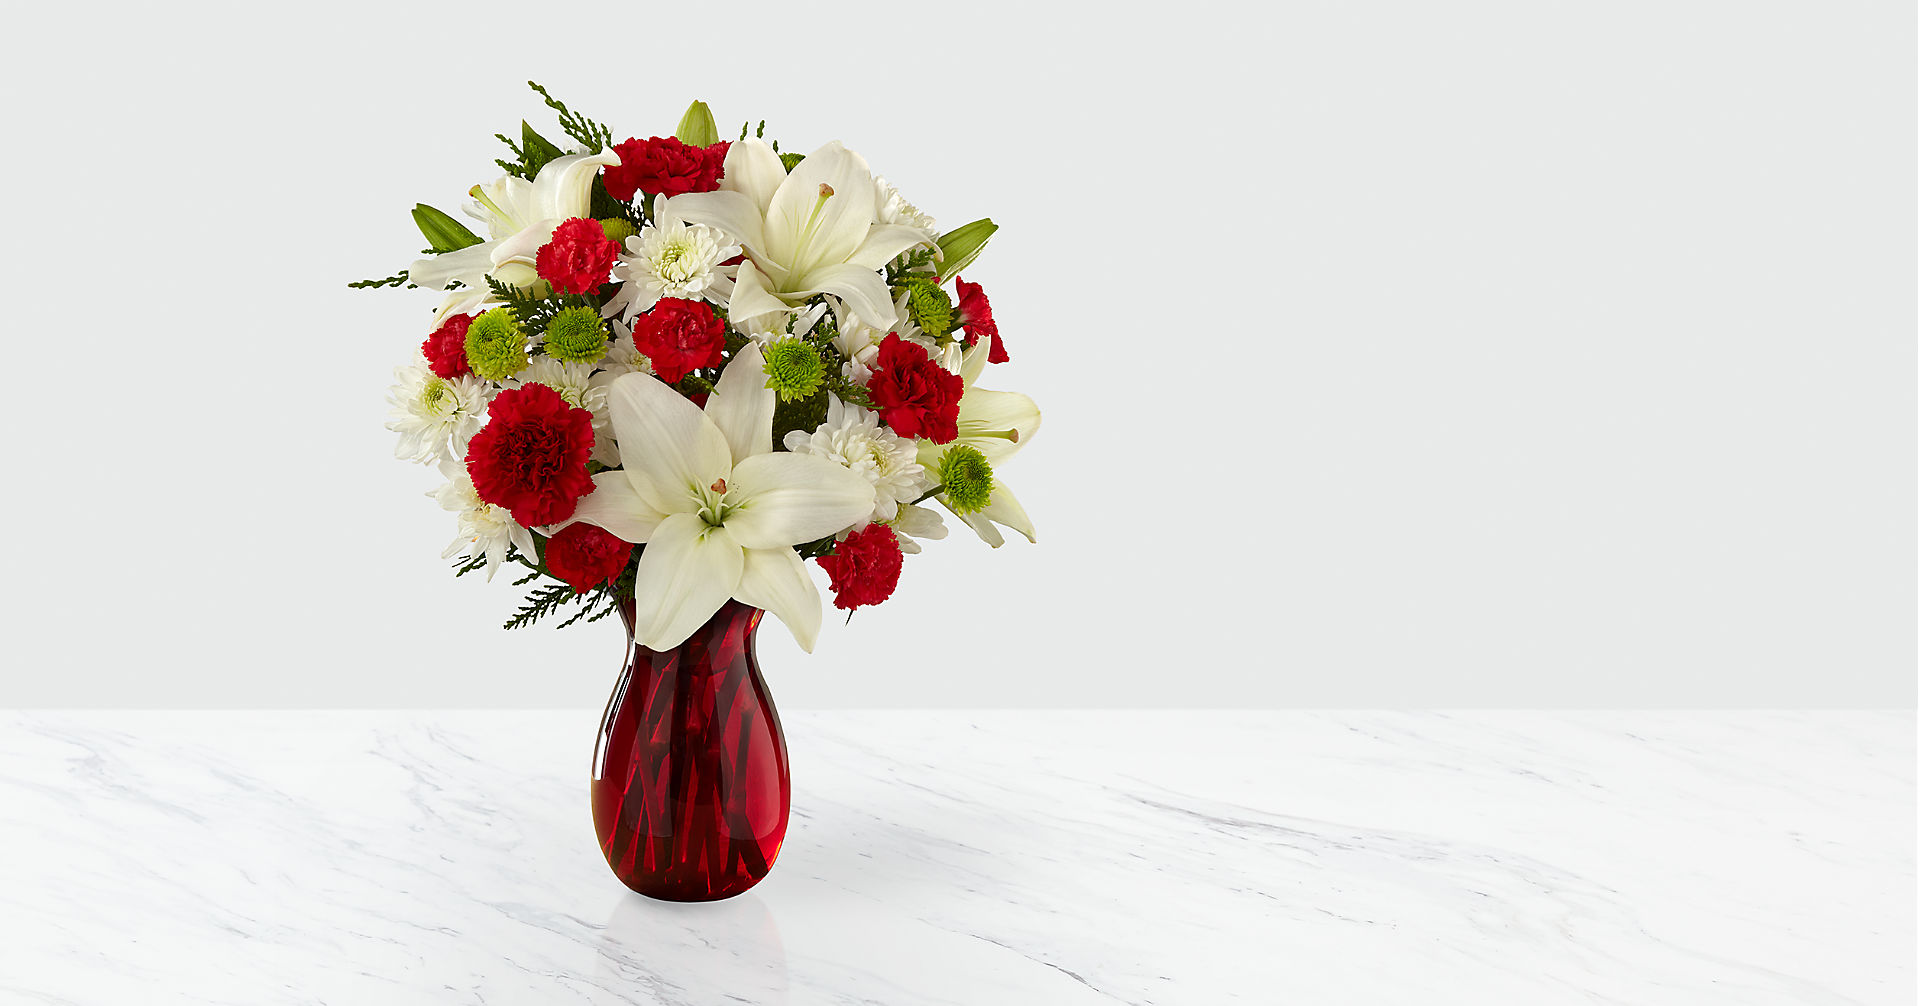 Open Your Heart Holiday Bouquet - VASE INCLUDED - Image 1 Of 2